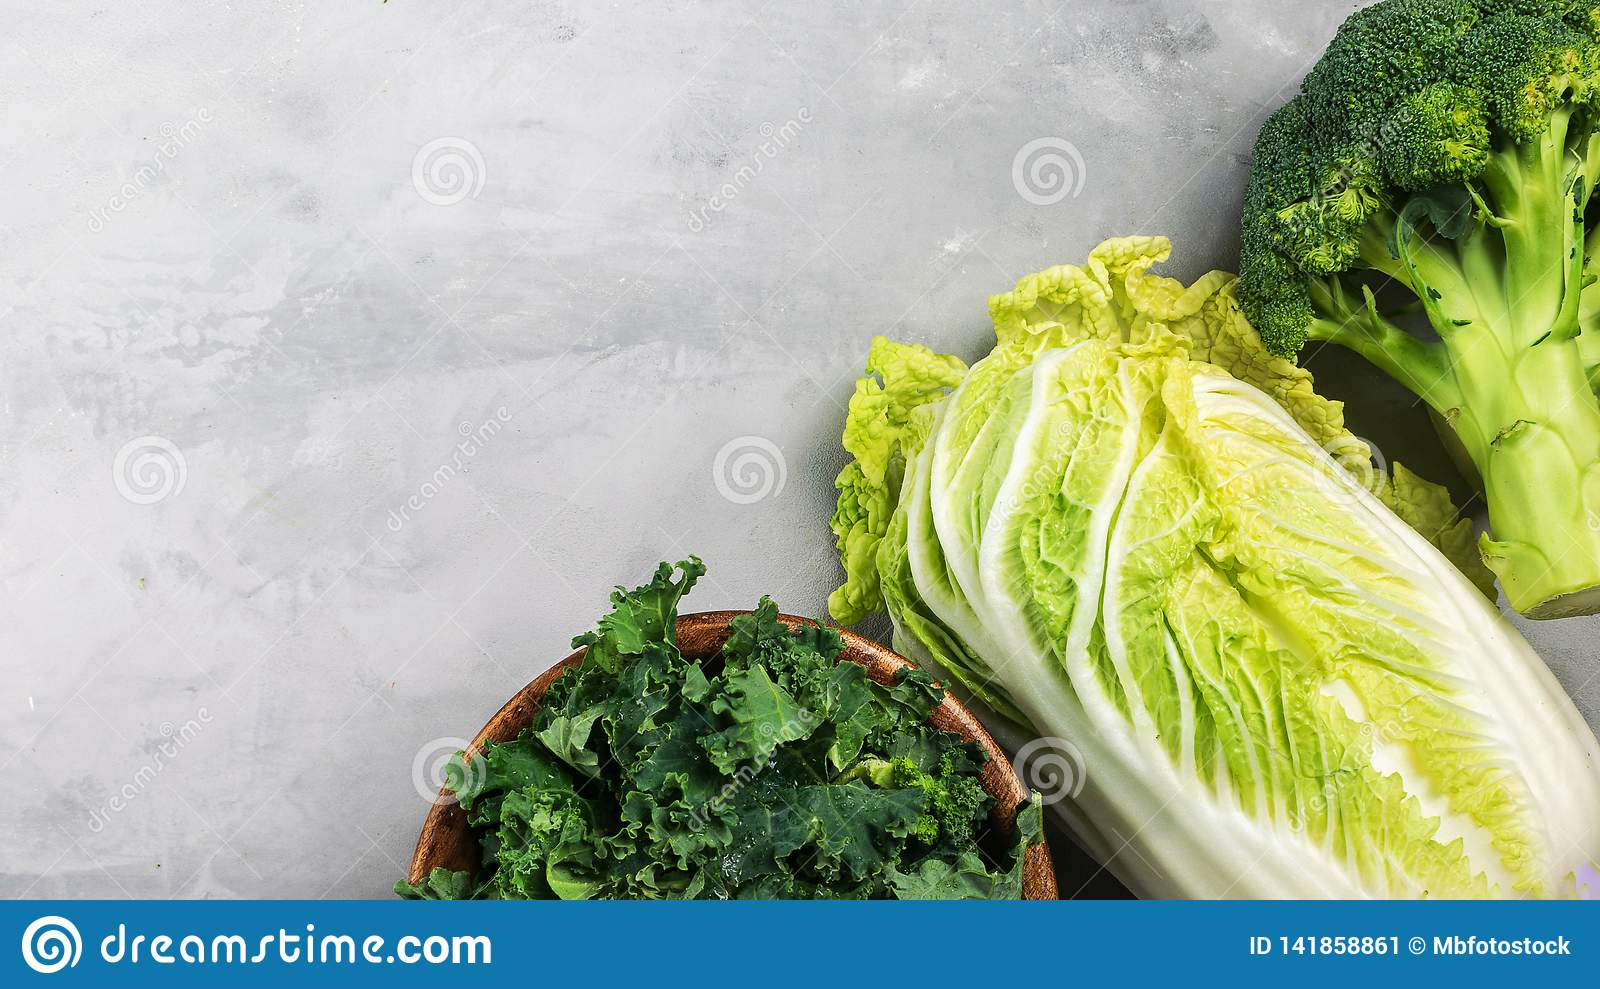 Different types of cabbage. Kale, chinese cabbage, broccoli on a gray background banner. Top view, copy space for text